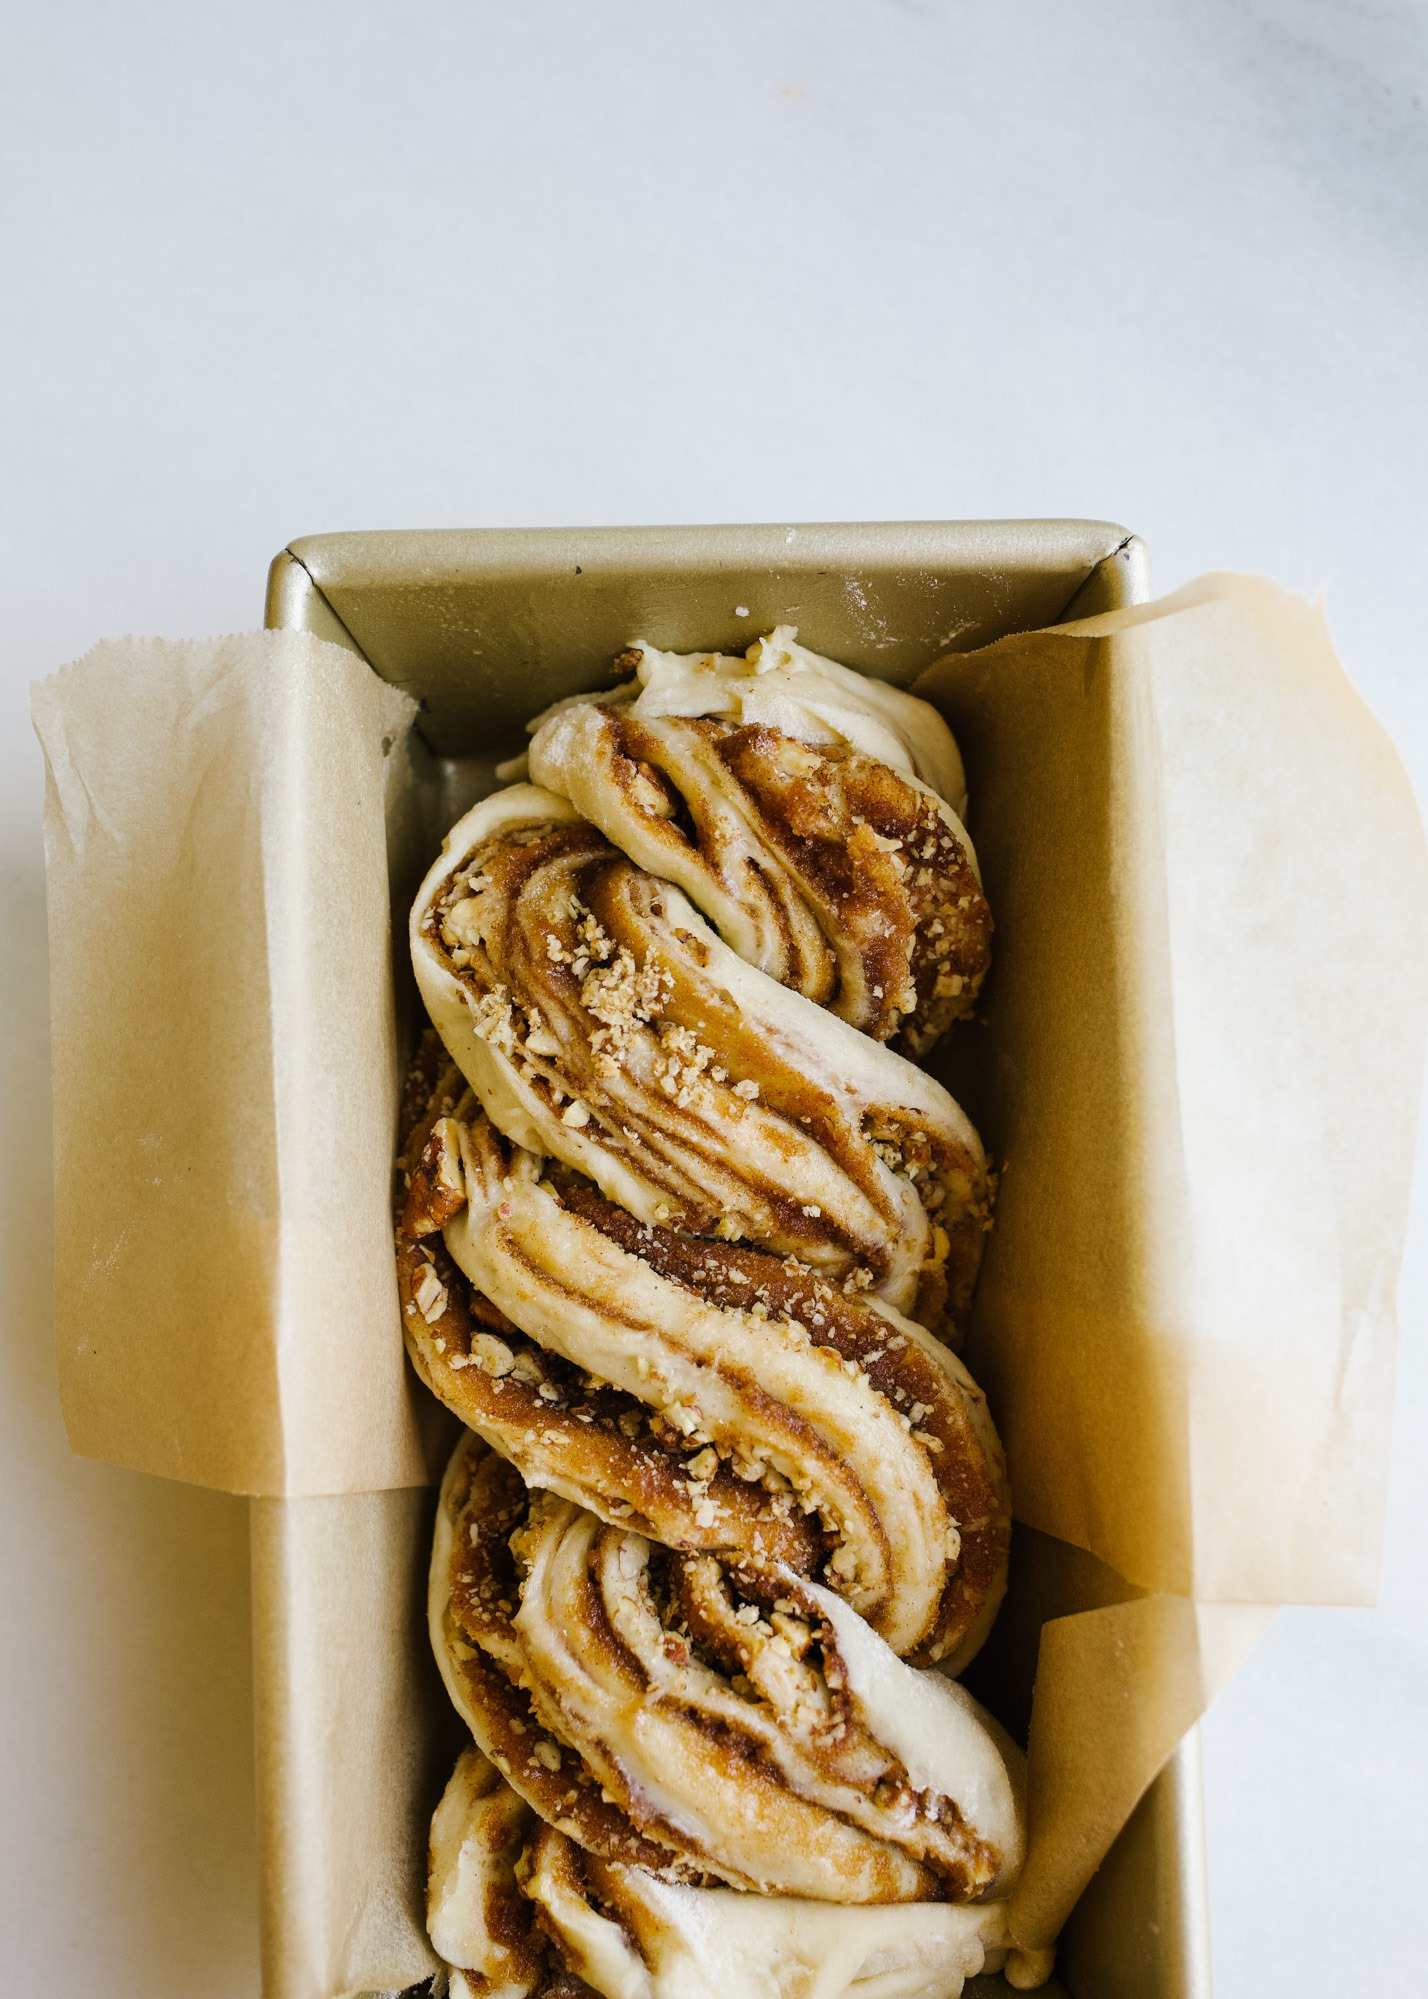 Pecan Babka by Wood and Spoon blog. This is a light and fluffy cinnamon swirl bread filled with brown sugar, cinnamon, and pecans! The loaves are tender, buttery, and lightly sweetened, and this bread makes for an excellent dessert or breakfast treat! Learn how to make it and braid your own babka on thewoodandspoon.com